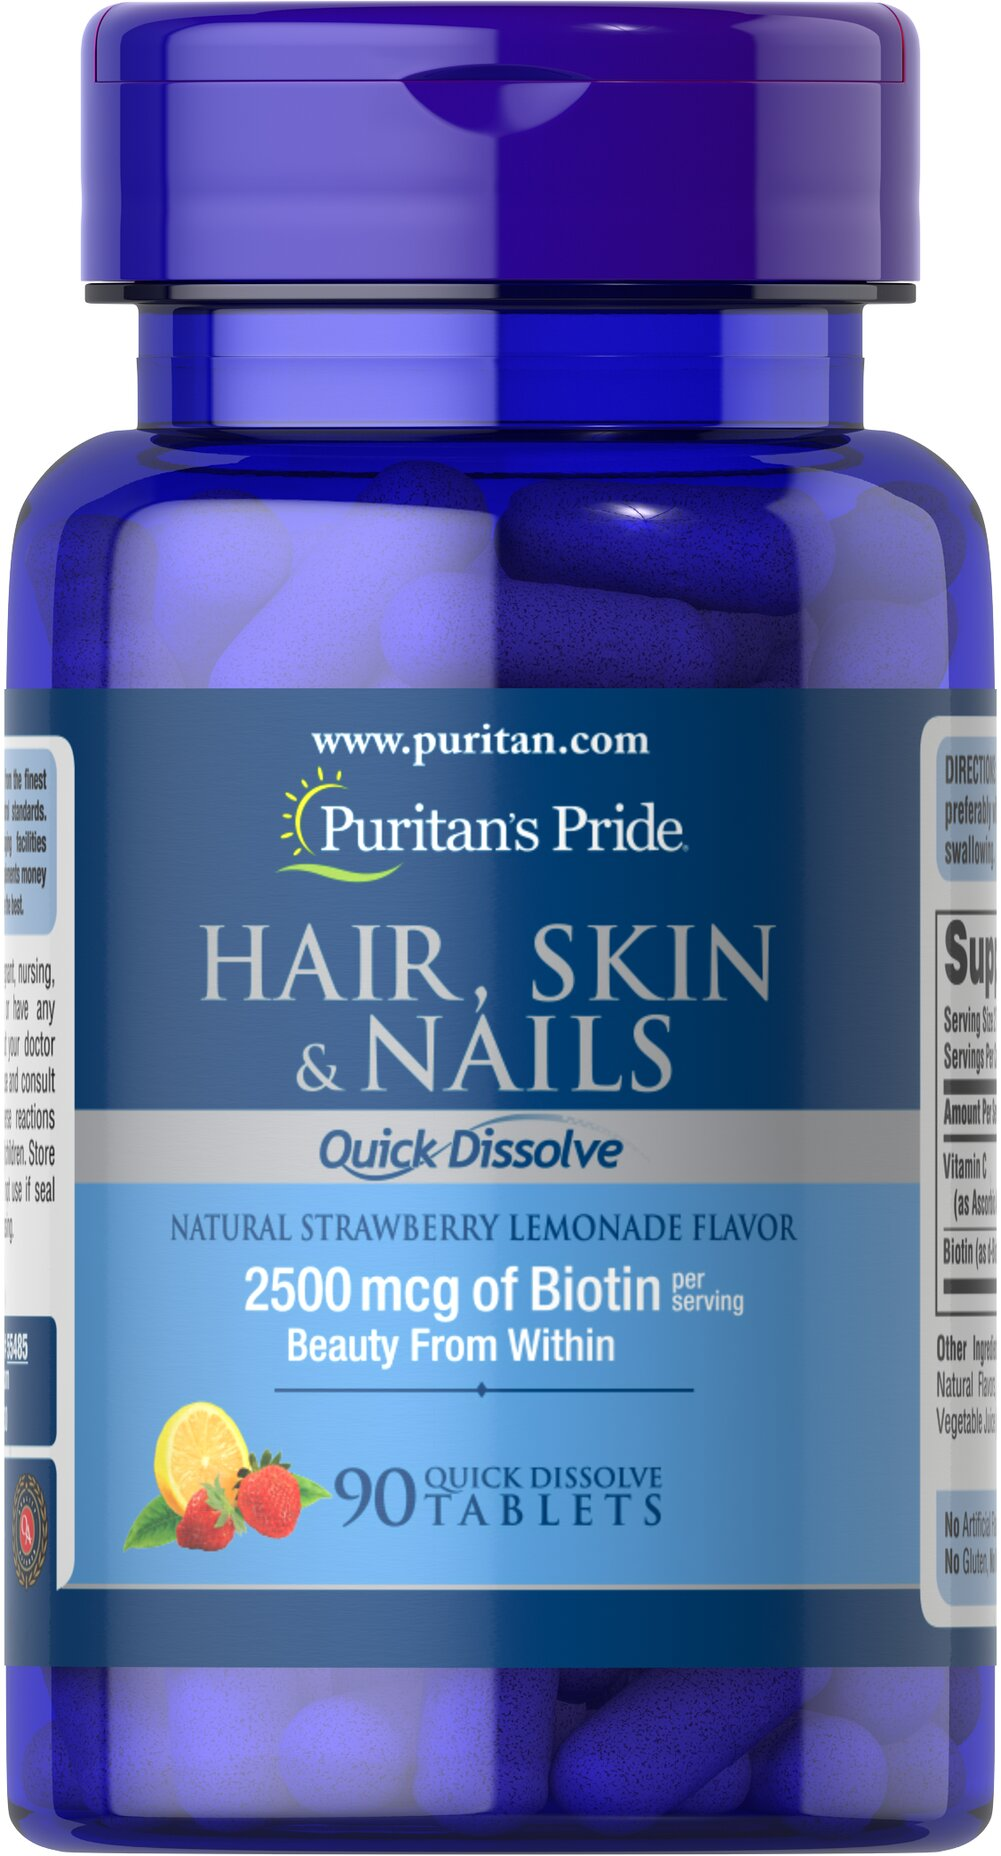 Quick Dissolve Hair Skin Nails Thumbnail Alternate Bottle View